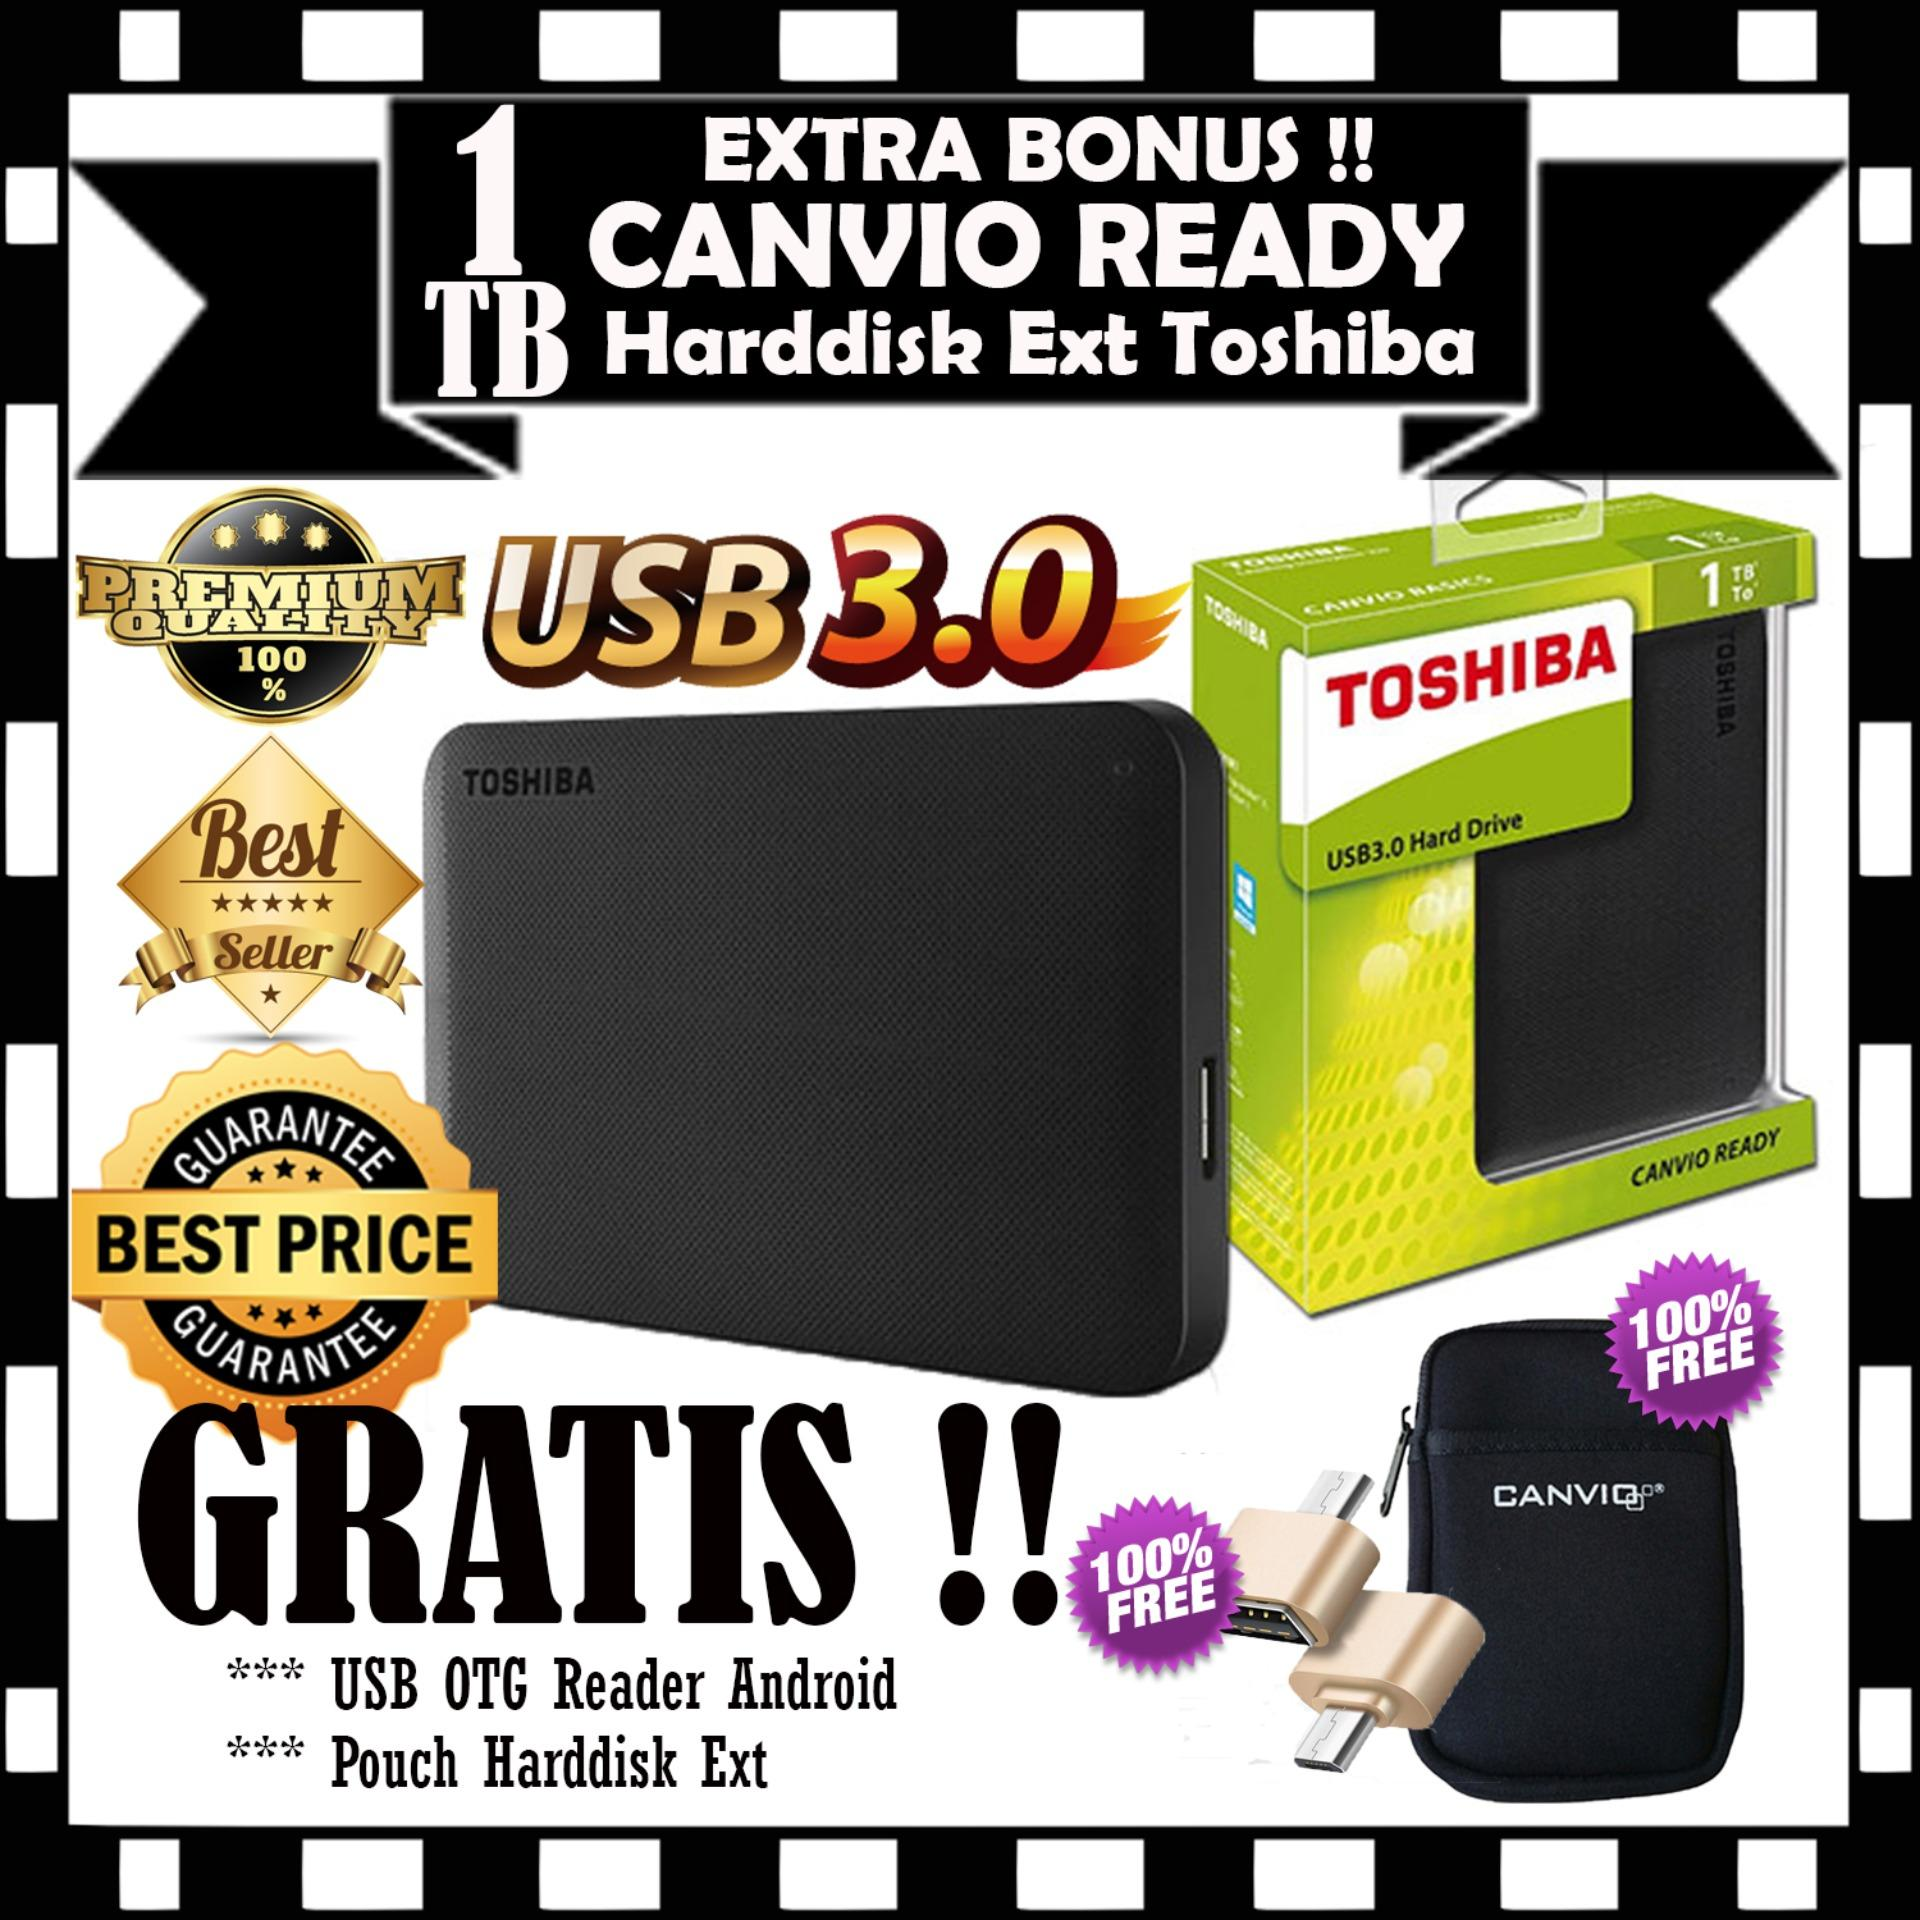 Jual Beli Toshiba 1Tb Canvio Ready Black Gratis Pouch Harddisk Usb Otg Reader Android